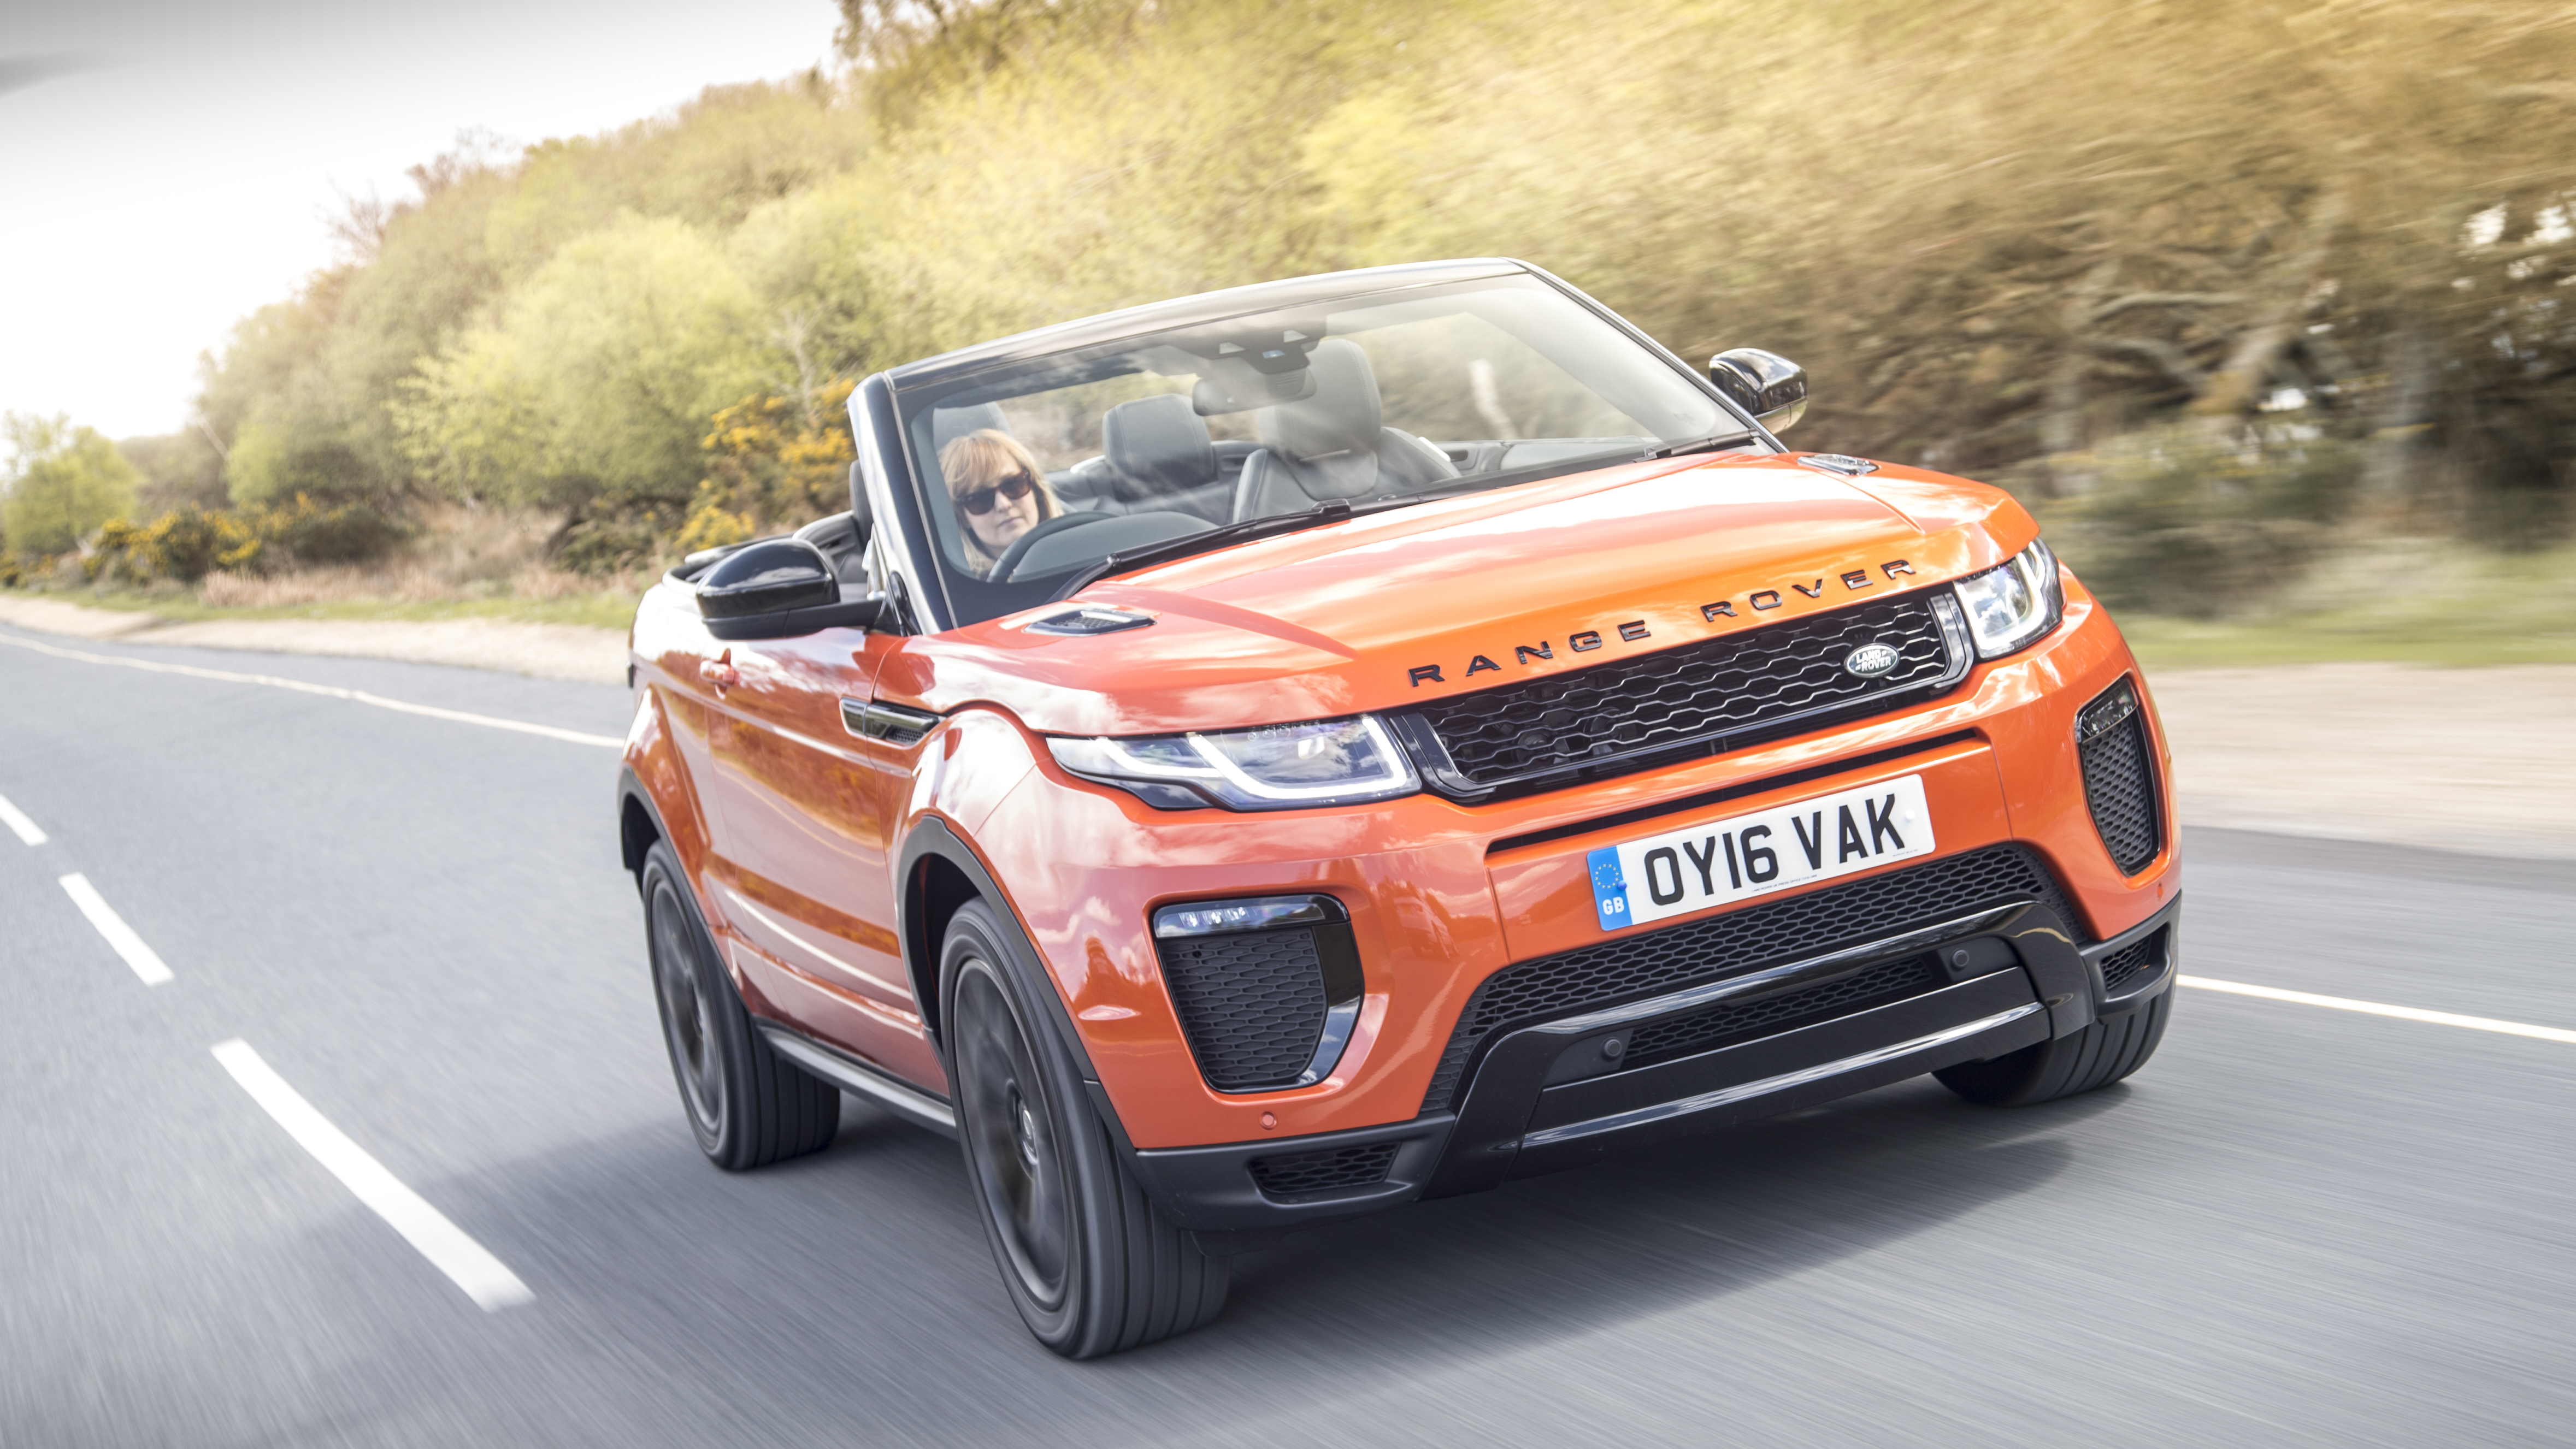 car ember highlights its range now grass rangeroverevoque rover traction off up abilities landrover pictures news land official red edition first revamps roof road features low the wet lease line cheap fixed new by evoque improves launch capable updates